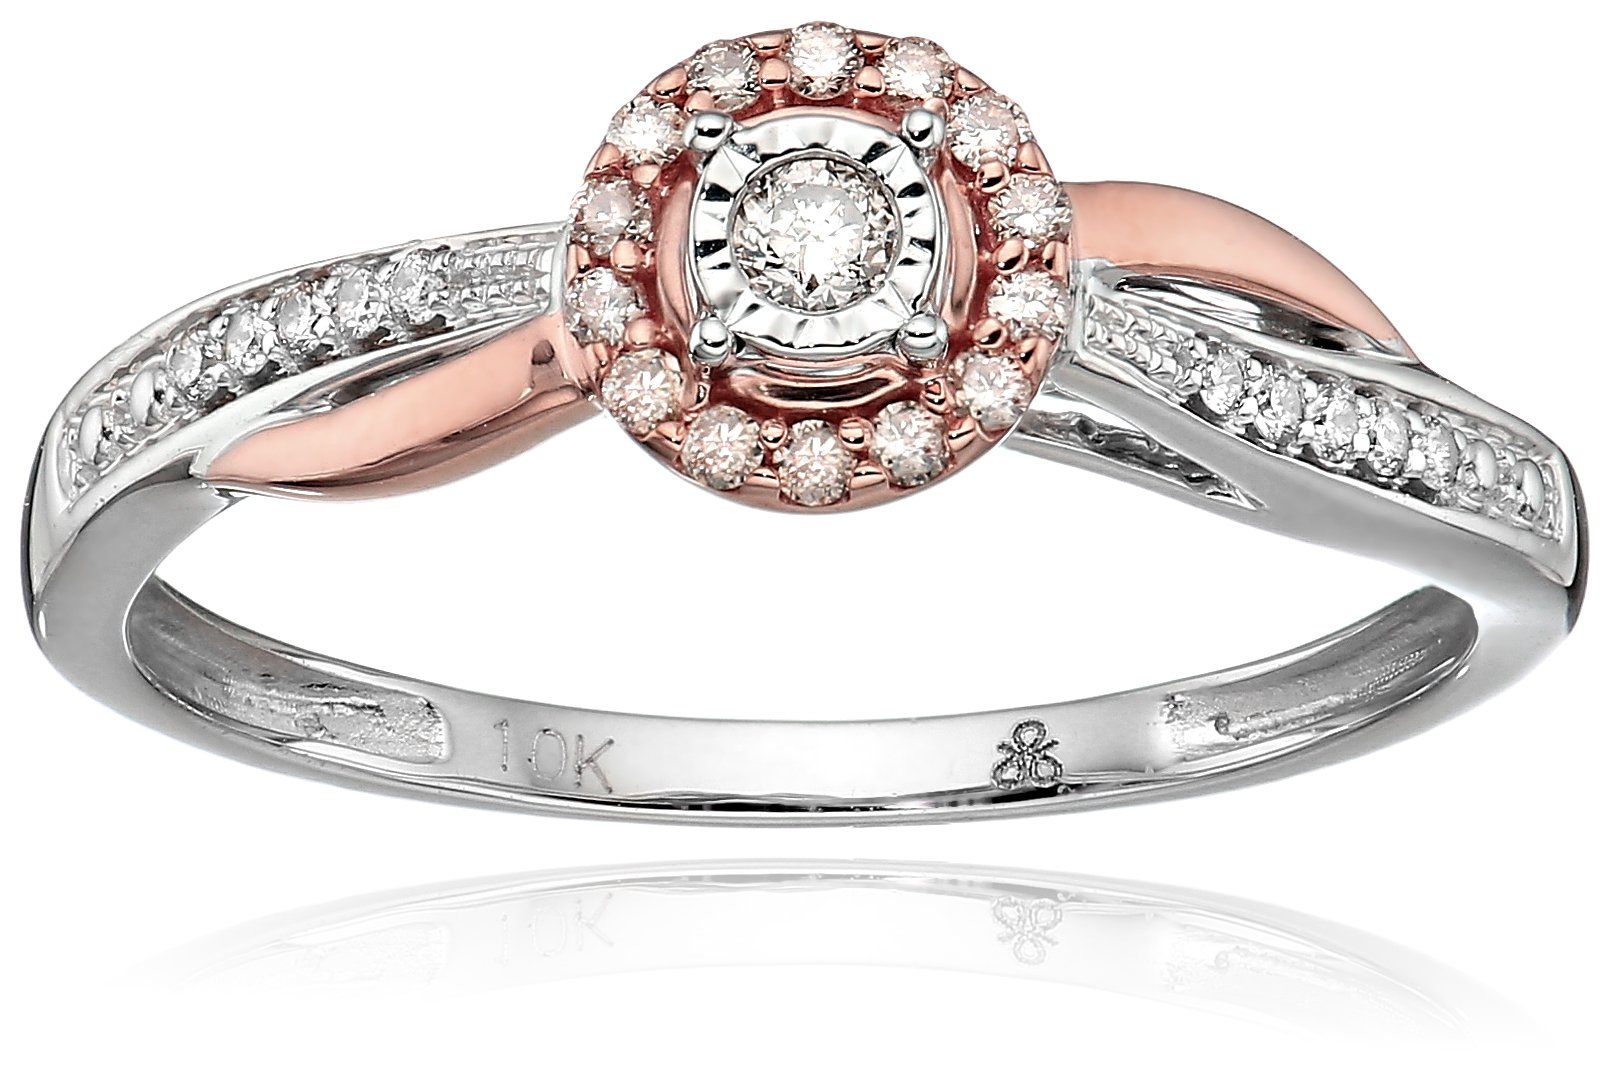 10k White And Rose Gold Round-Cut Diamond Promise Ring, Size 6